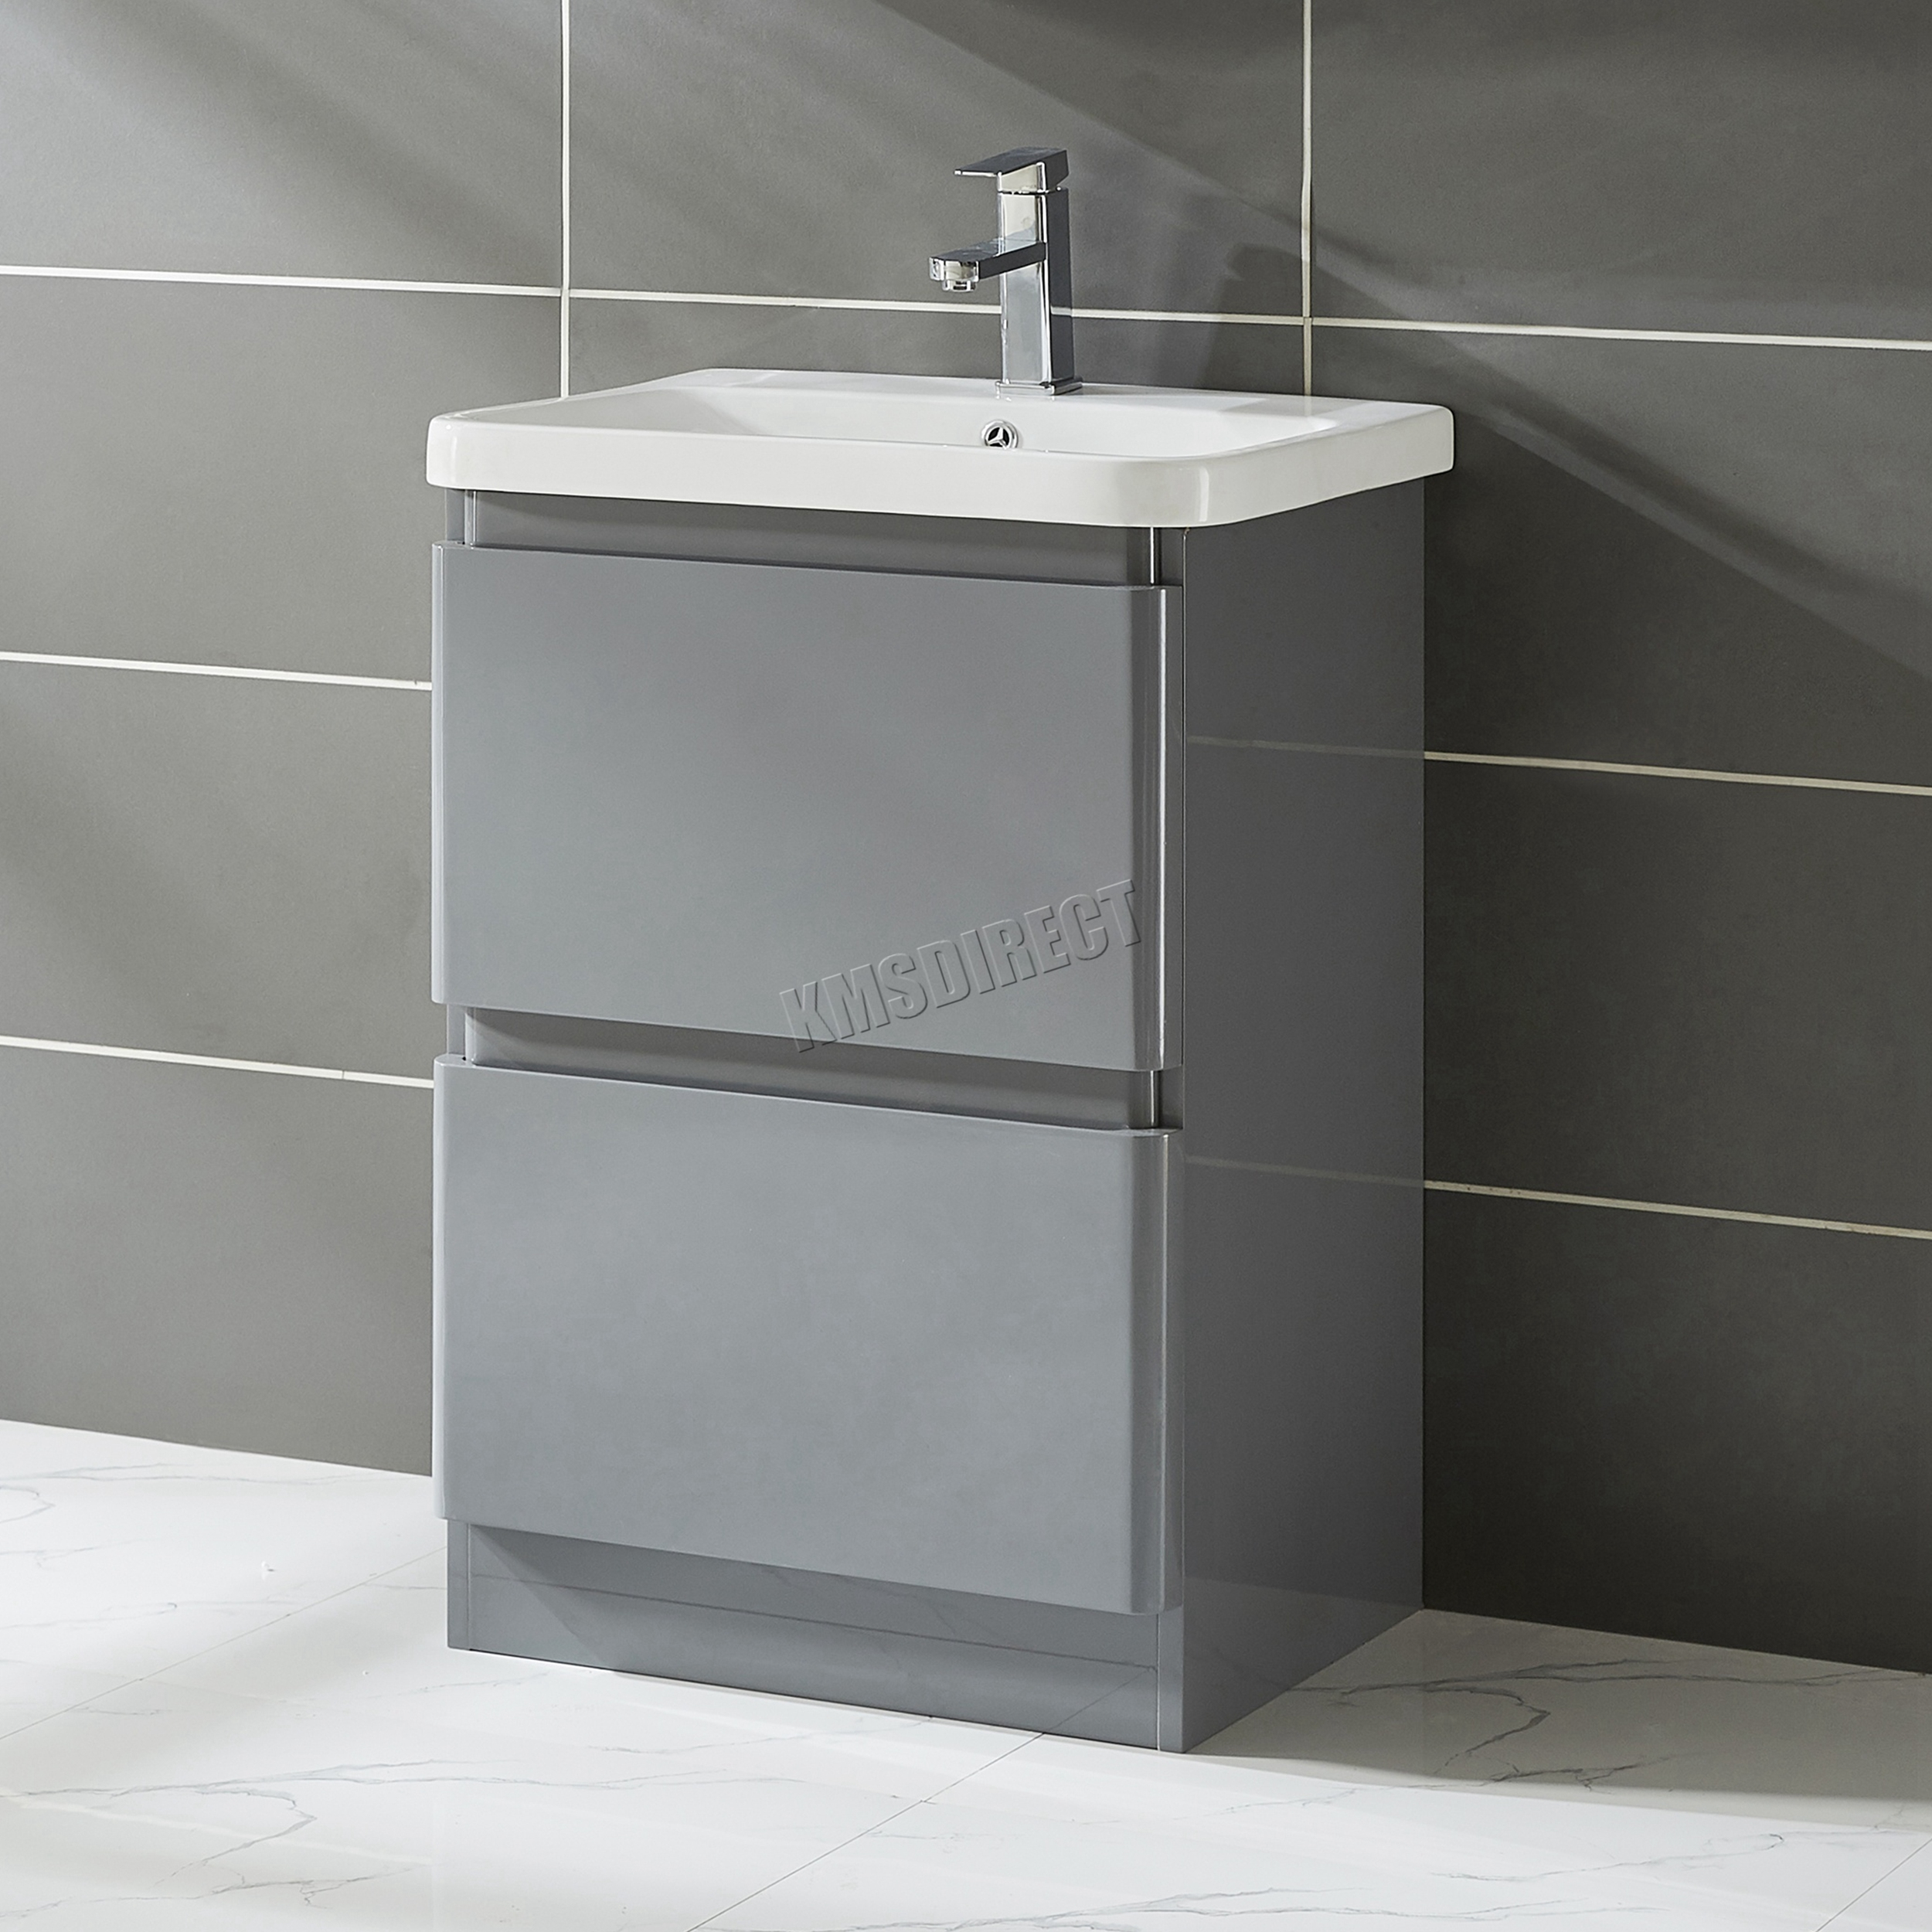 high gloss grey bathroom cabinets foxhunter vanity unit mdf high gloss 2 drawers basin 23322 | VANITY UNIT MDF VU03 FLOOR 60CM GREY KMSWM01